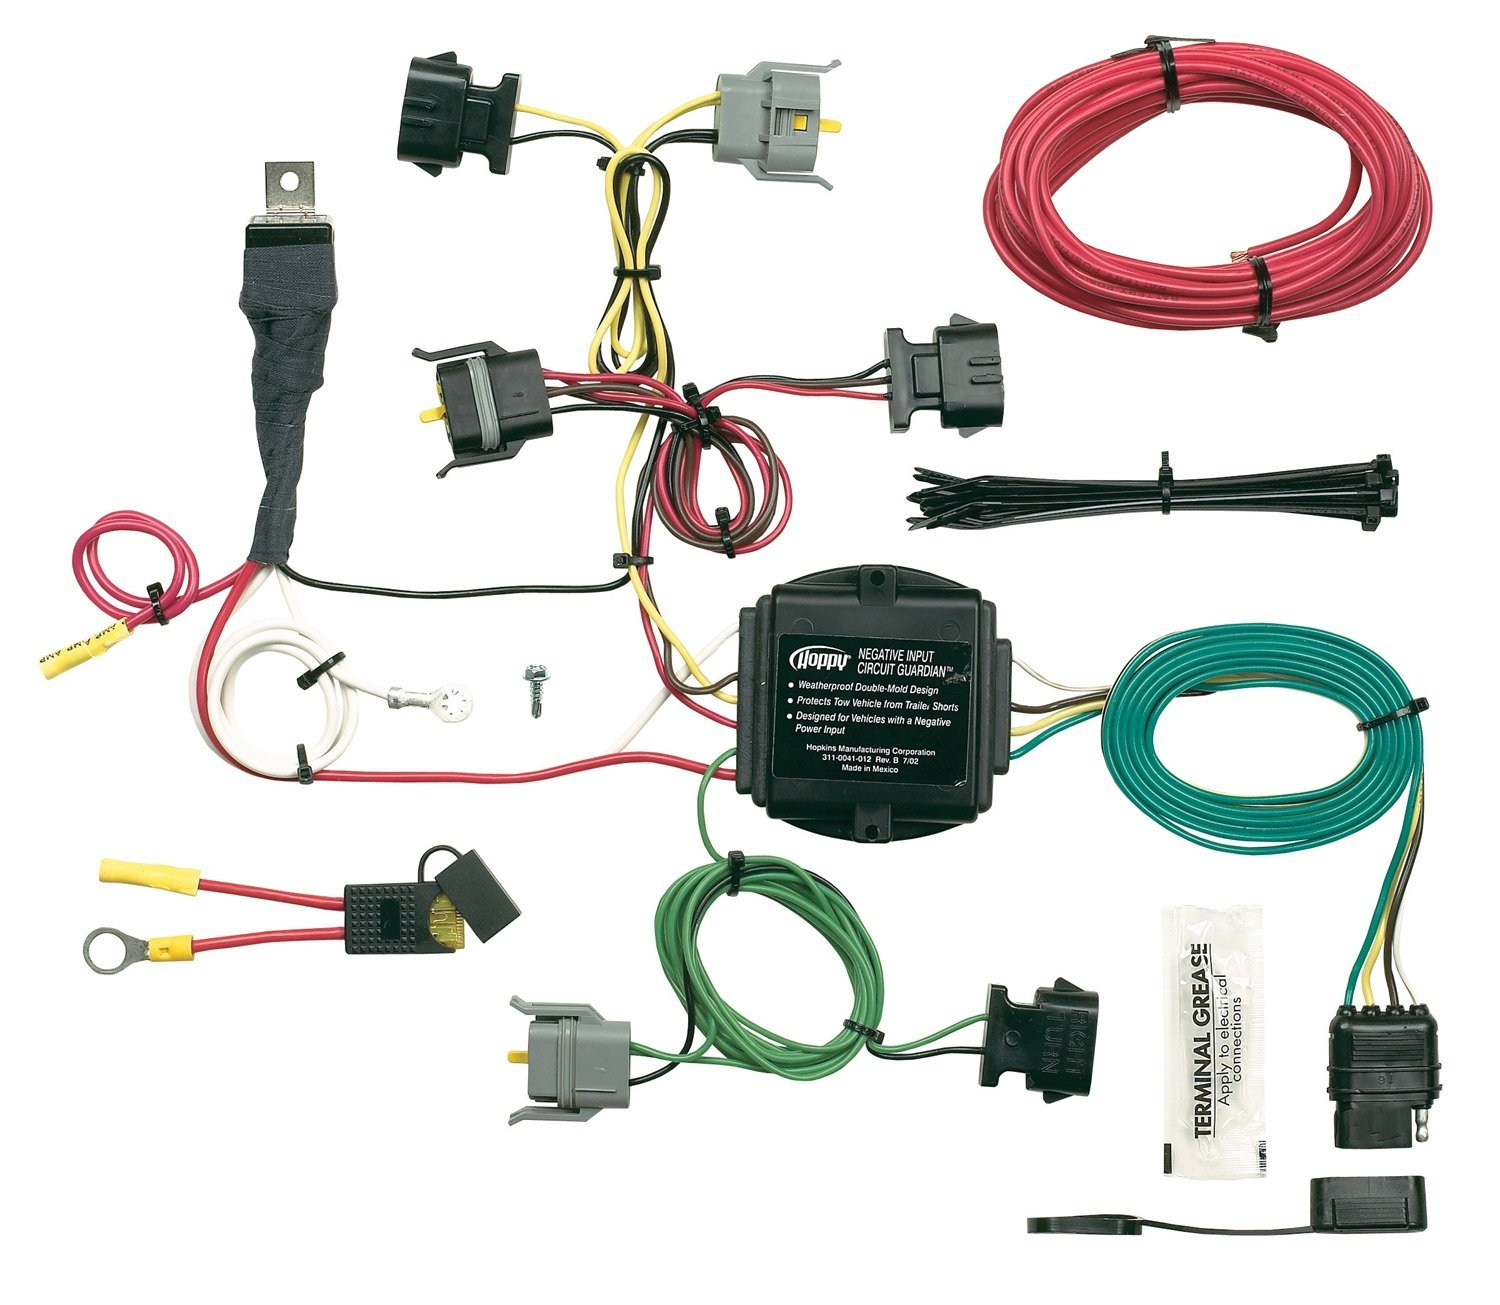 Hopkins Manufacturing Wiring Diagram Electrical Diagrams 47185 40615 Plug In Simple Vehicle Kit T Connectors Allow Flow